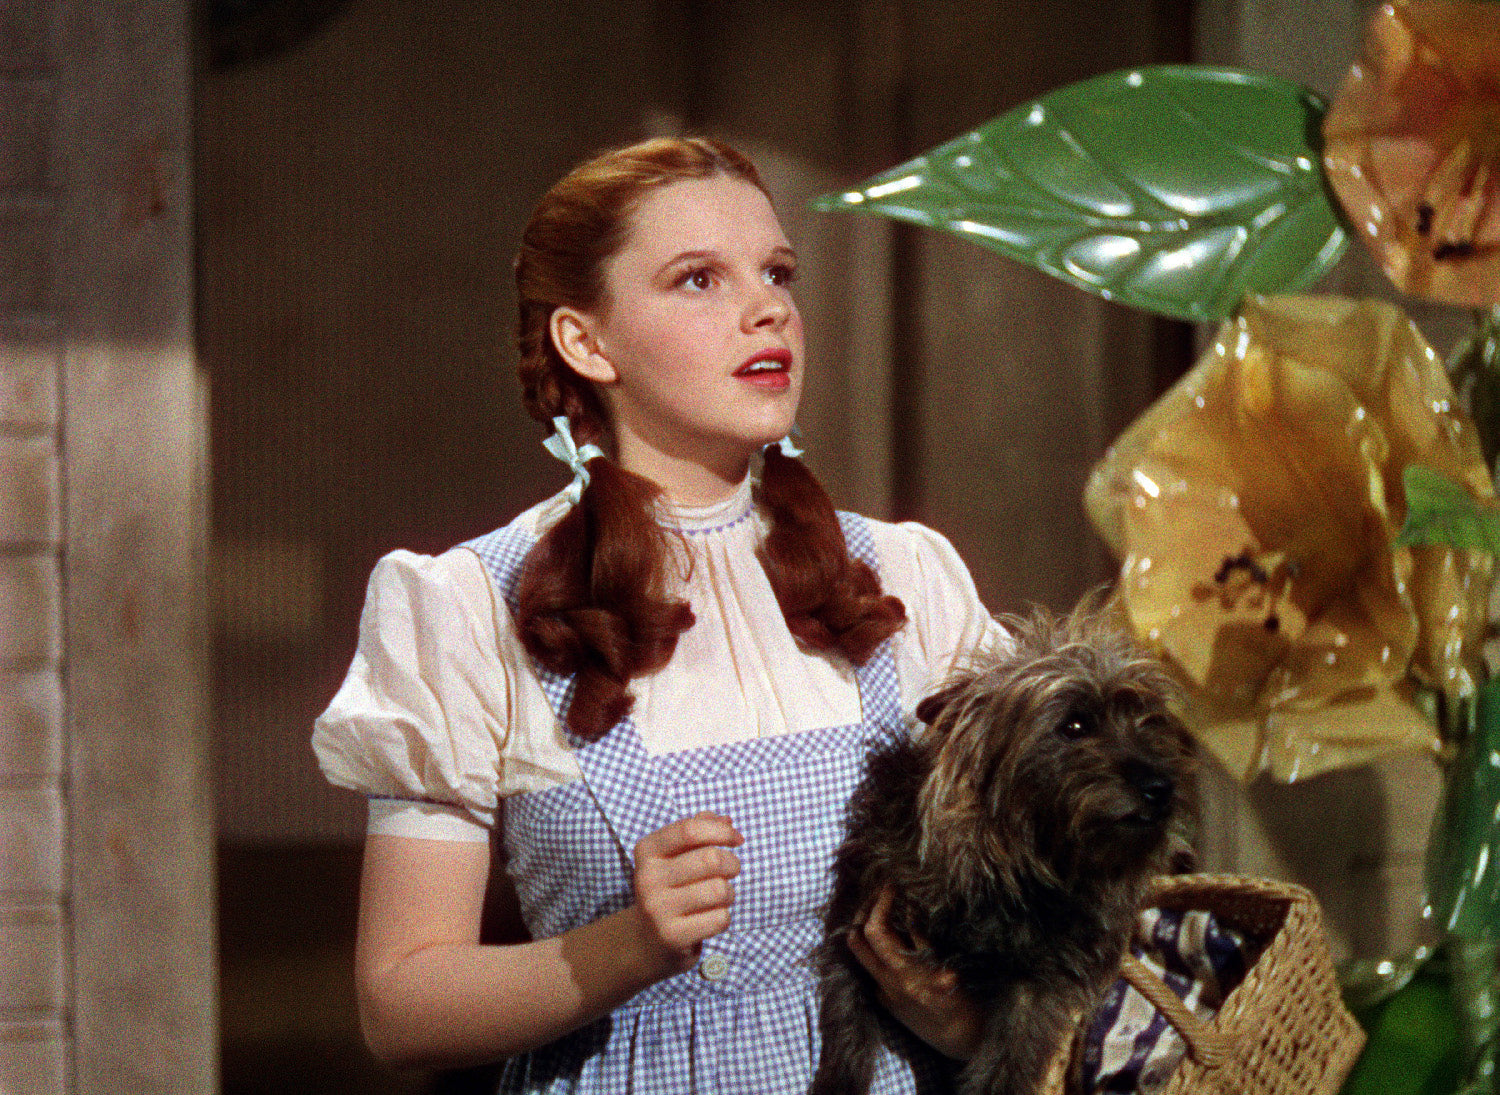 ic: The Wizard of Oz (1939), Everett Collection